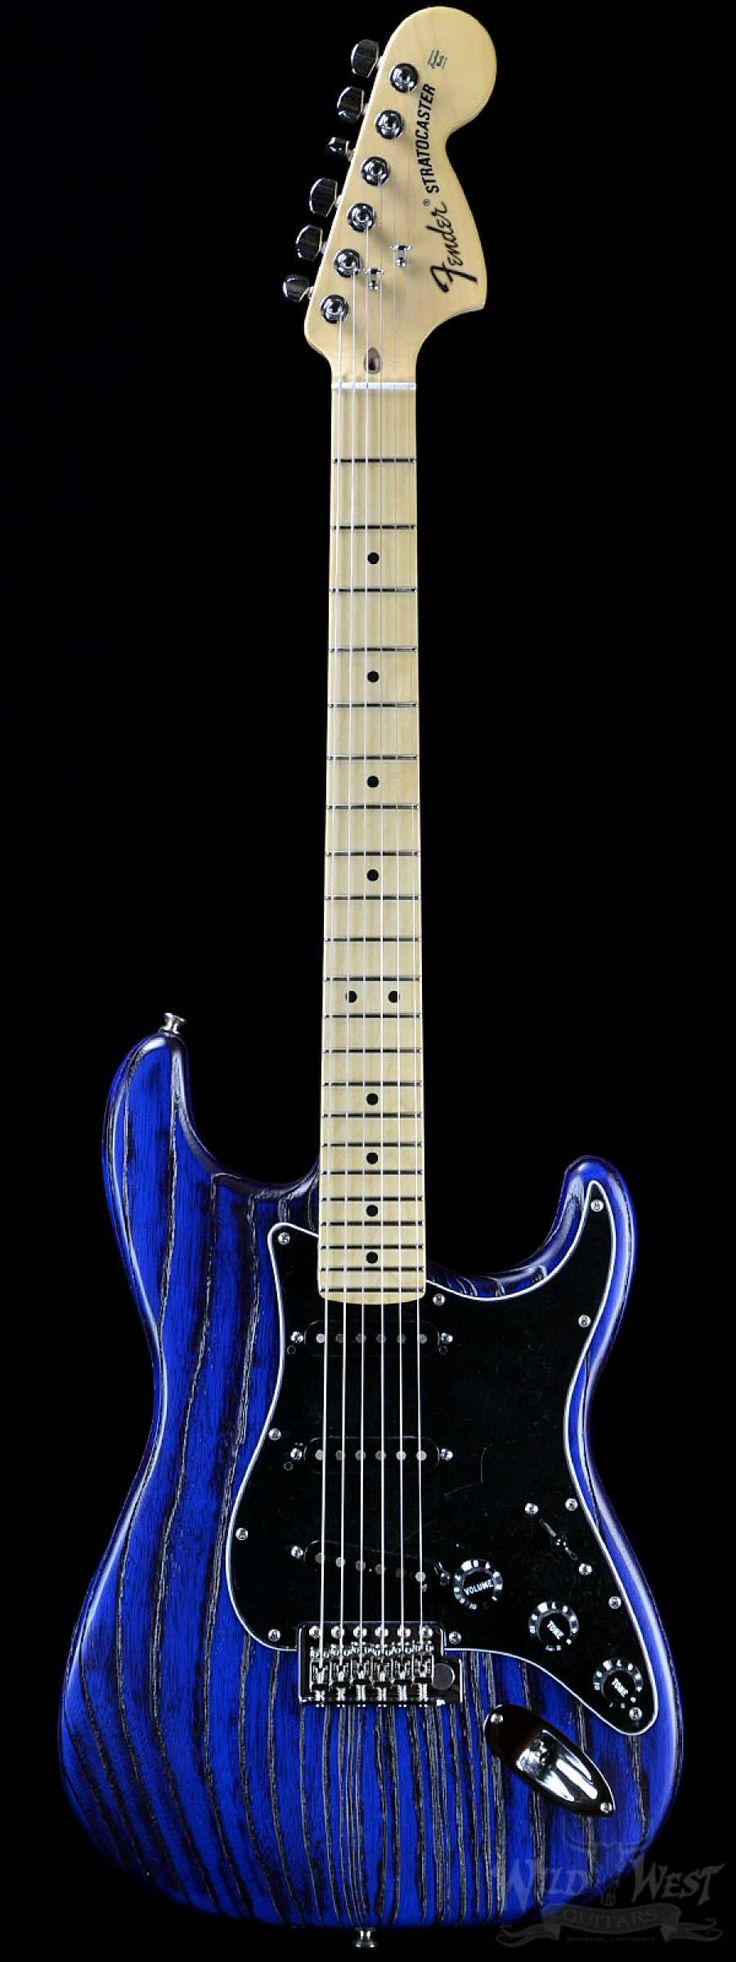 Fender USA Limited Edition Sandblasted Stratocaster Sapphire Blue Transparent - Wild West Guitars